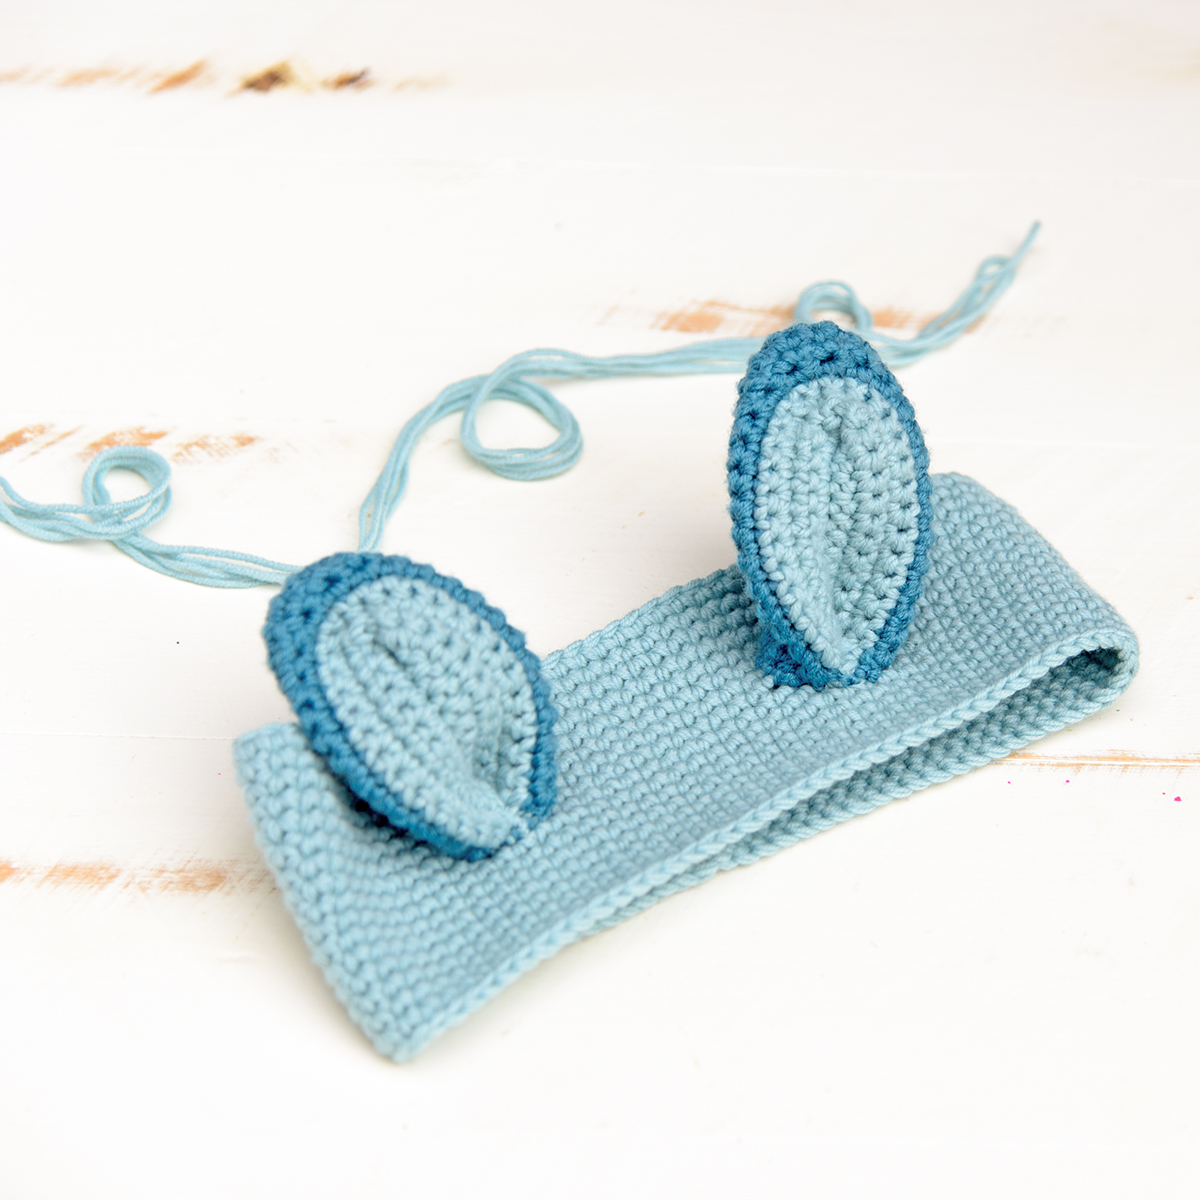 Cute Crochet Headband with Animal Ears